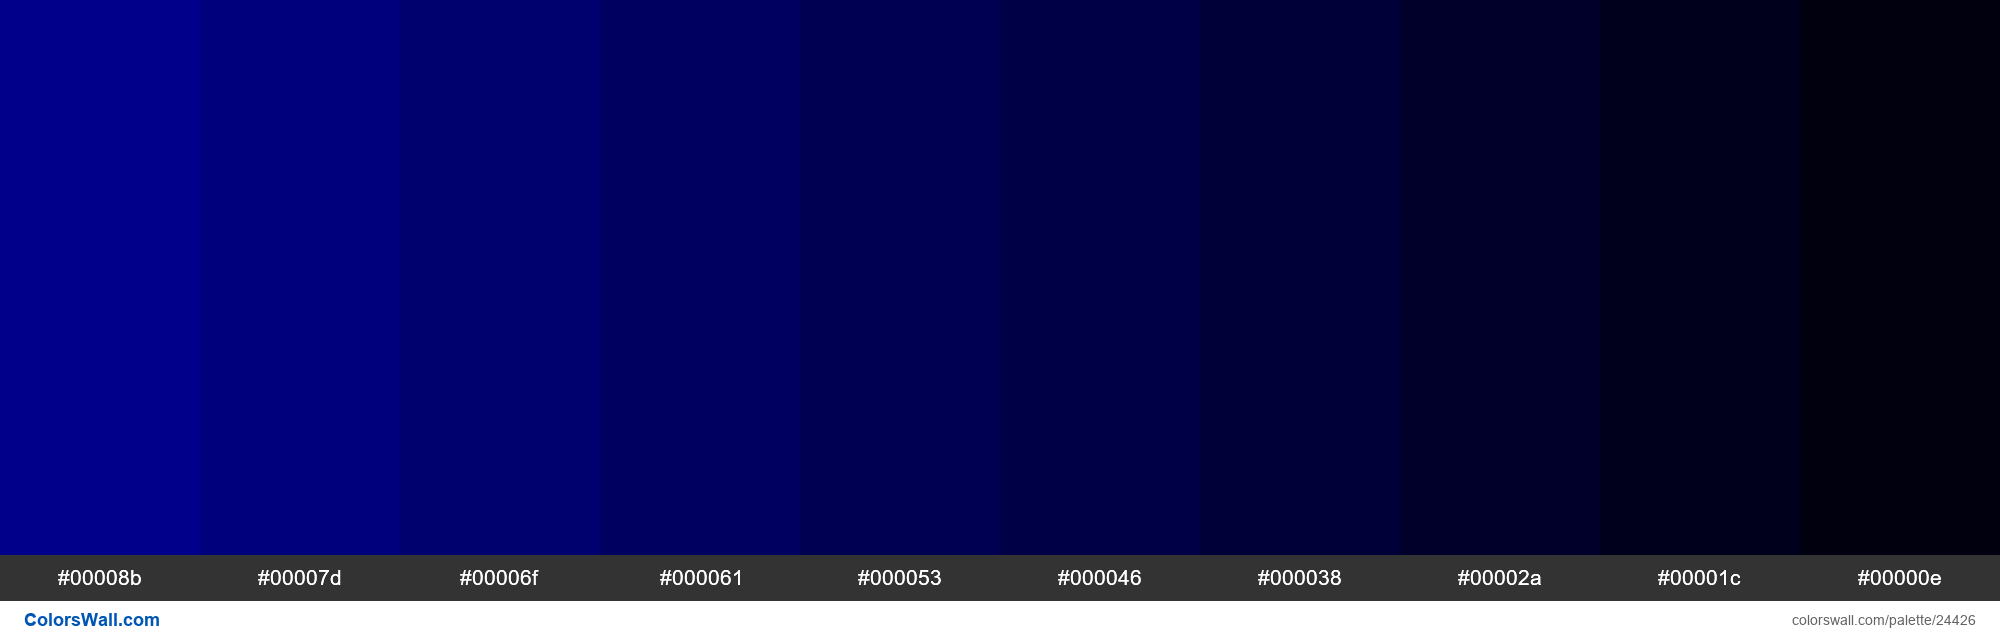 Shades of Dark Blue #00008B hex color - #24426